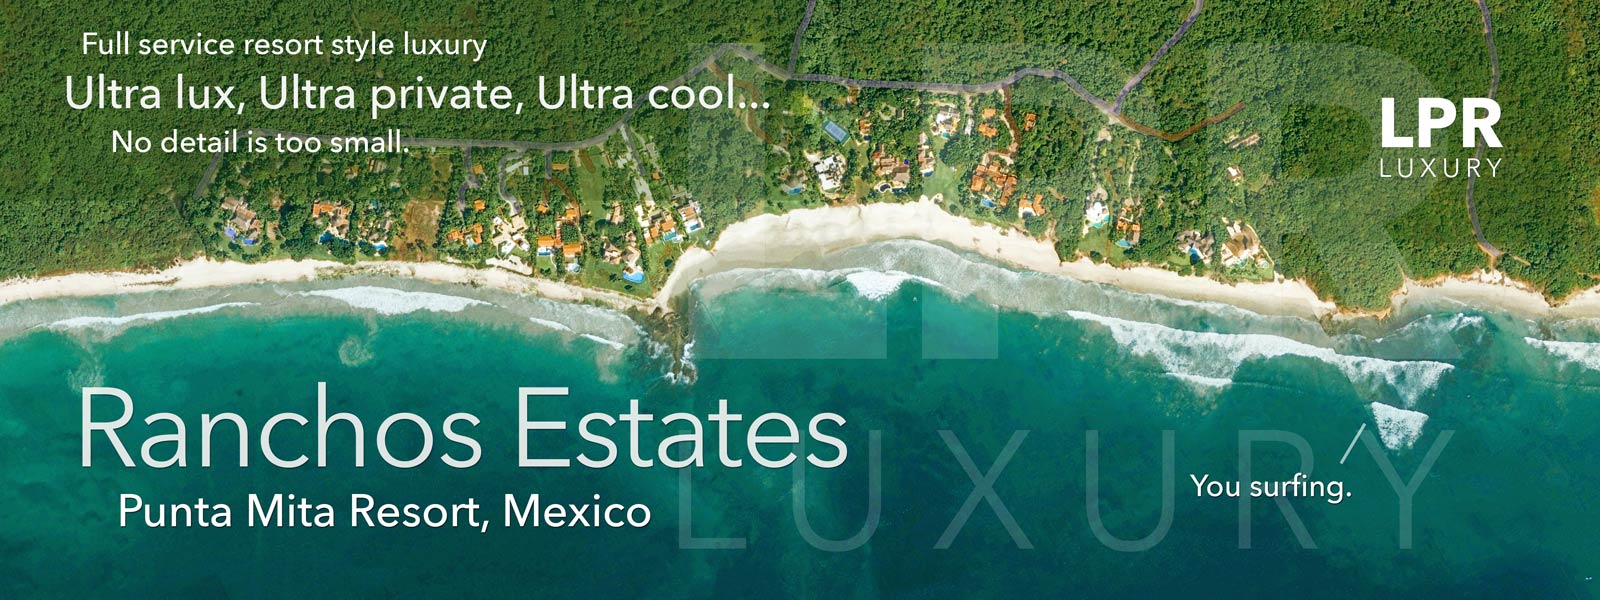 Ultra Luxury Vacation Rentals at Ranchos Estates - Putna Mita Resort, Riviera Nayarit, Mexico